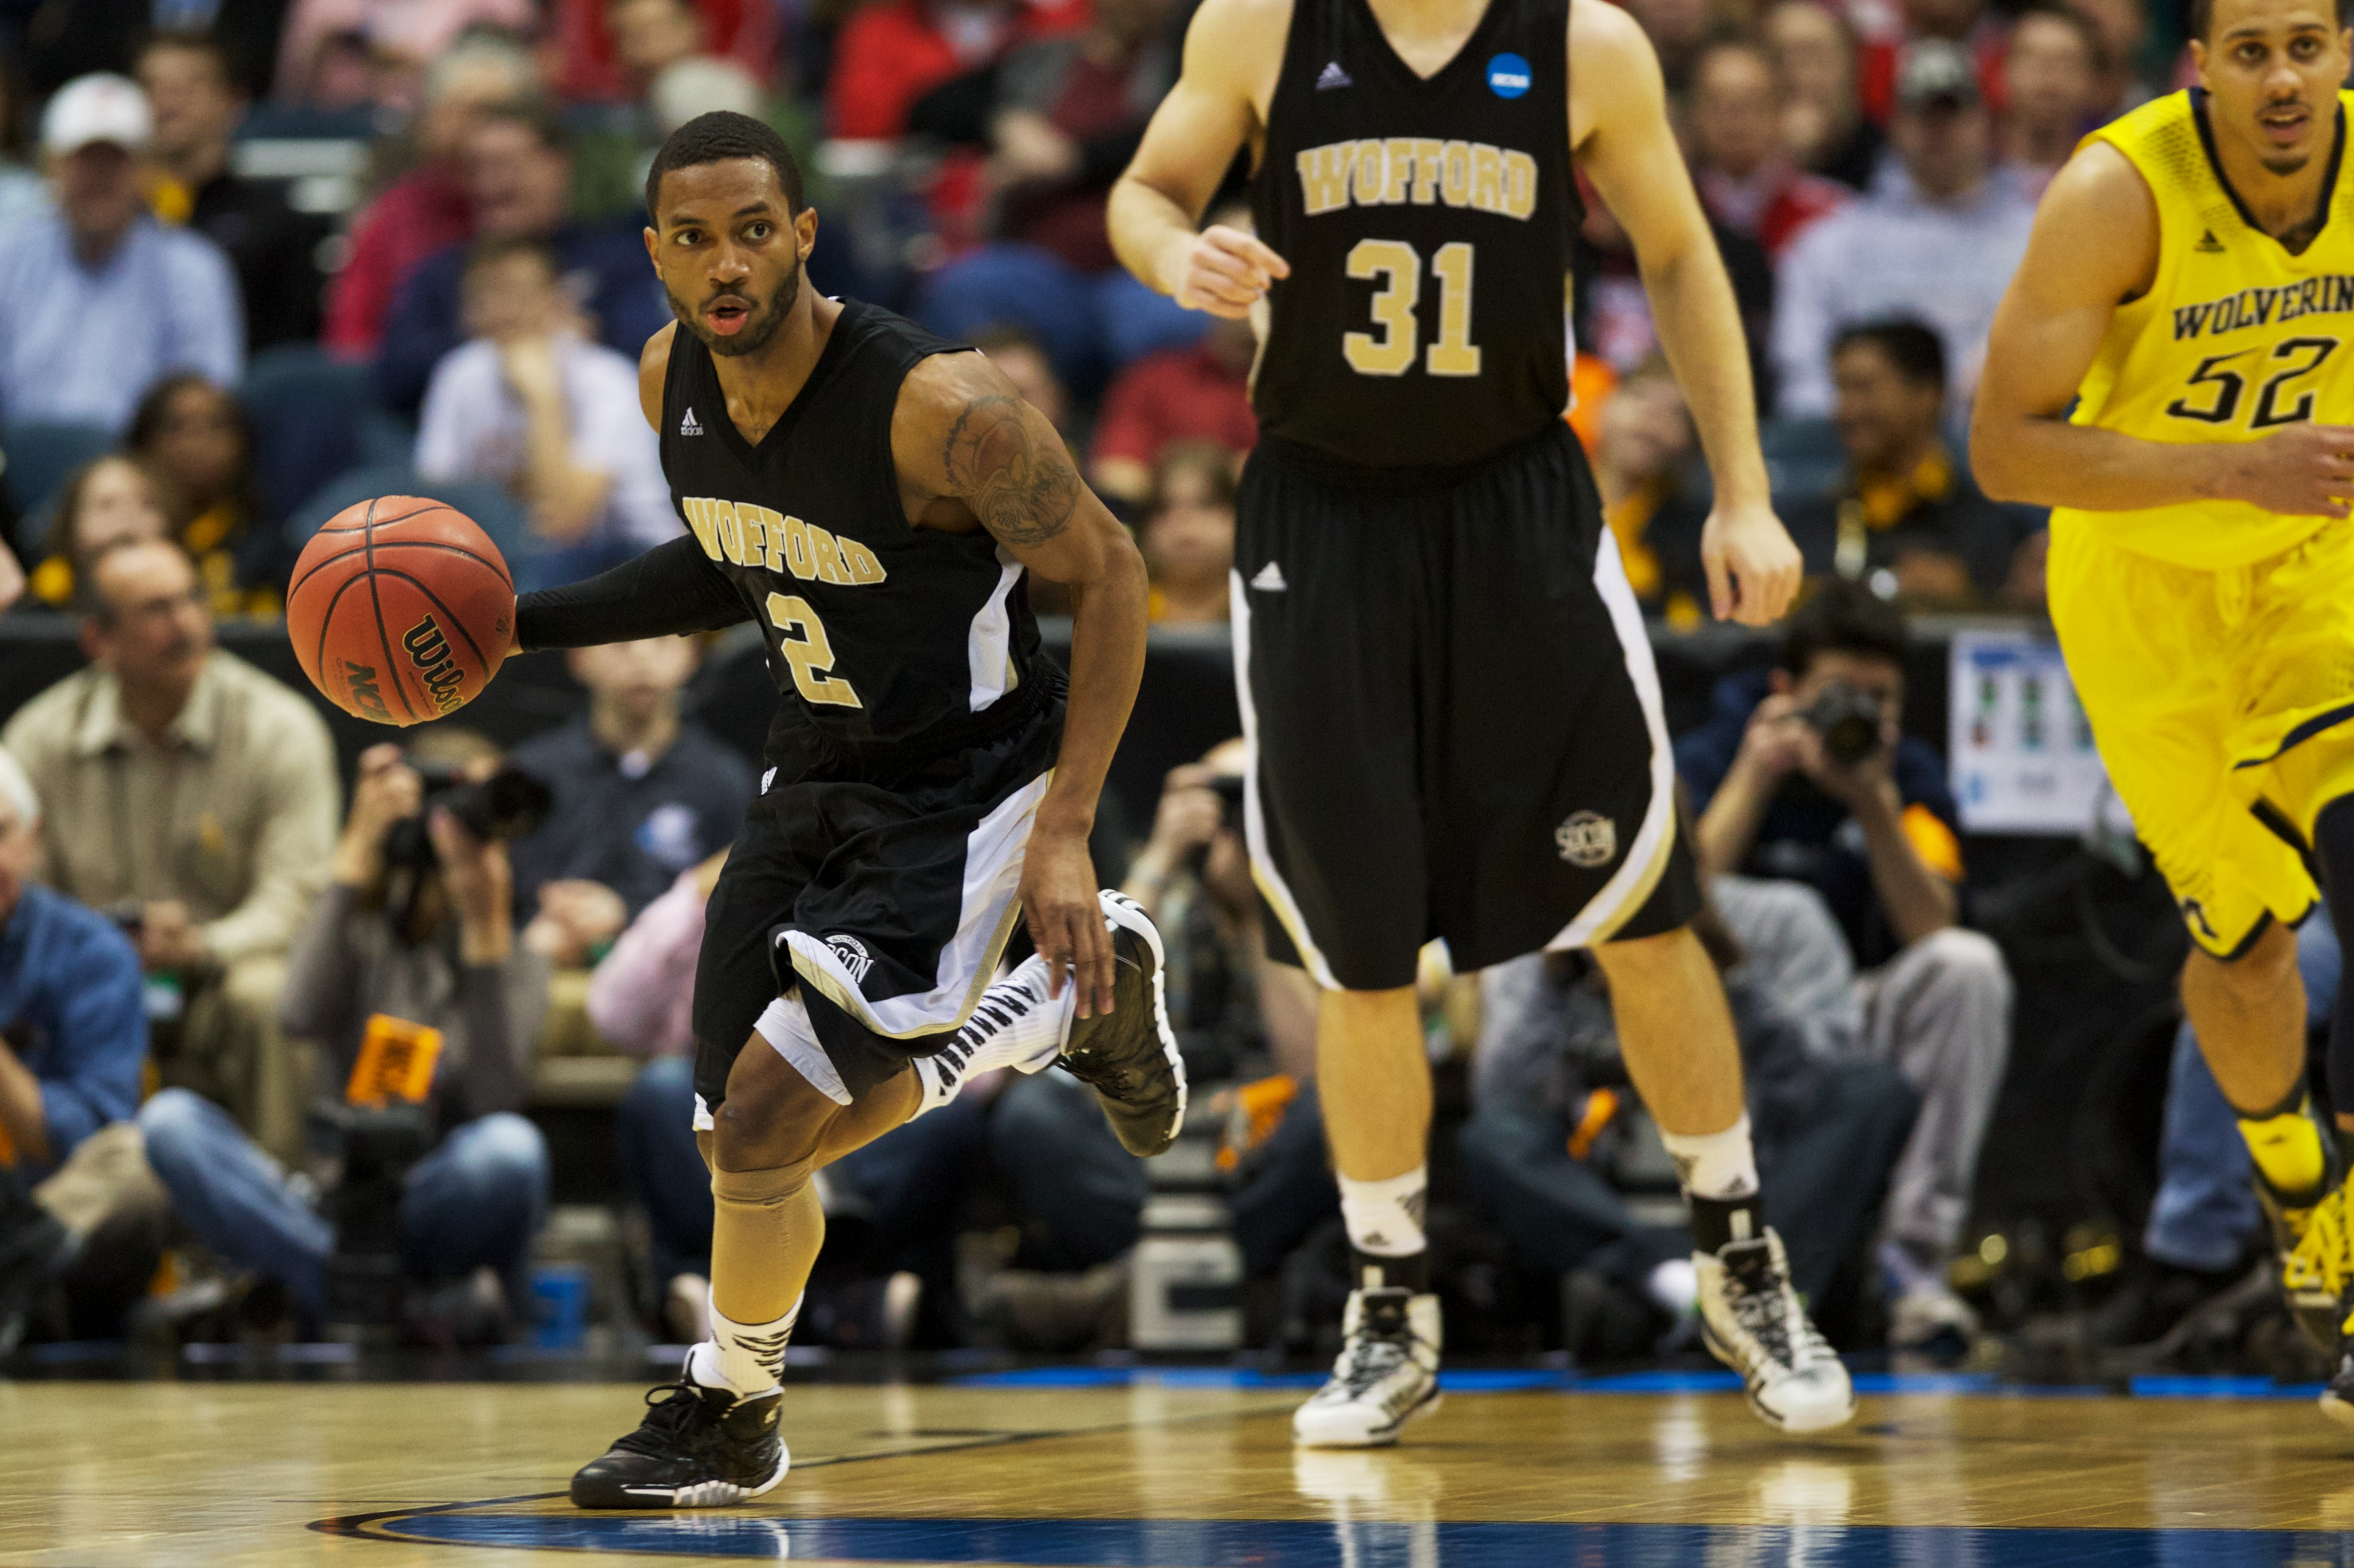 wofford basketball